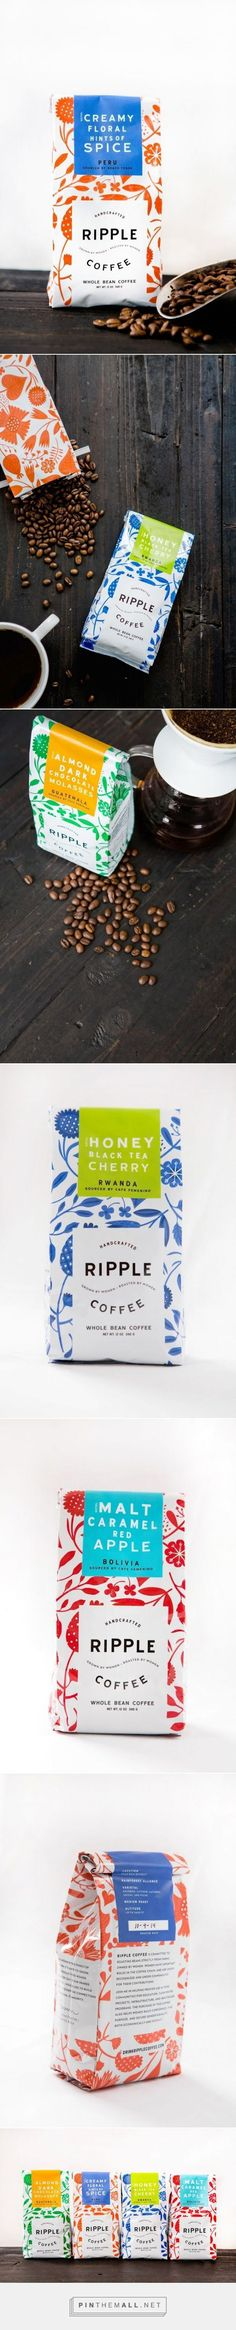 Ripple Coffee #CoffeeBags